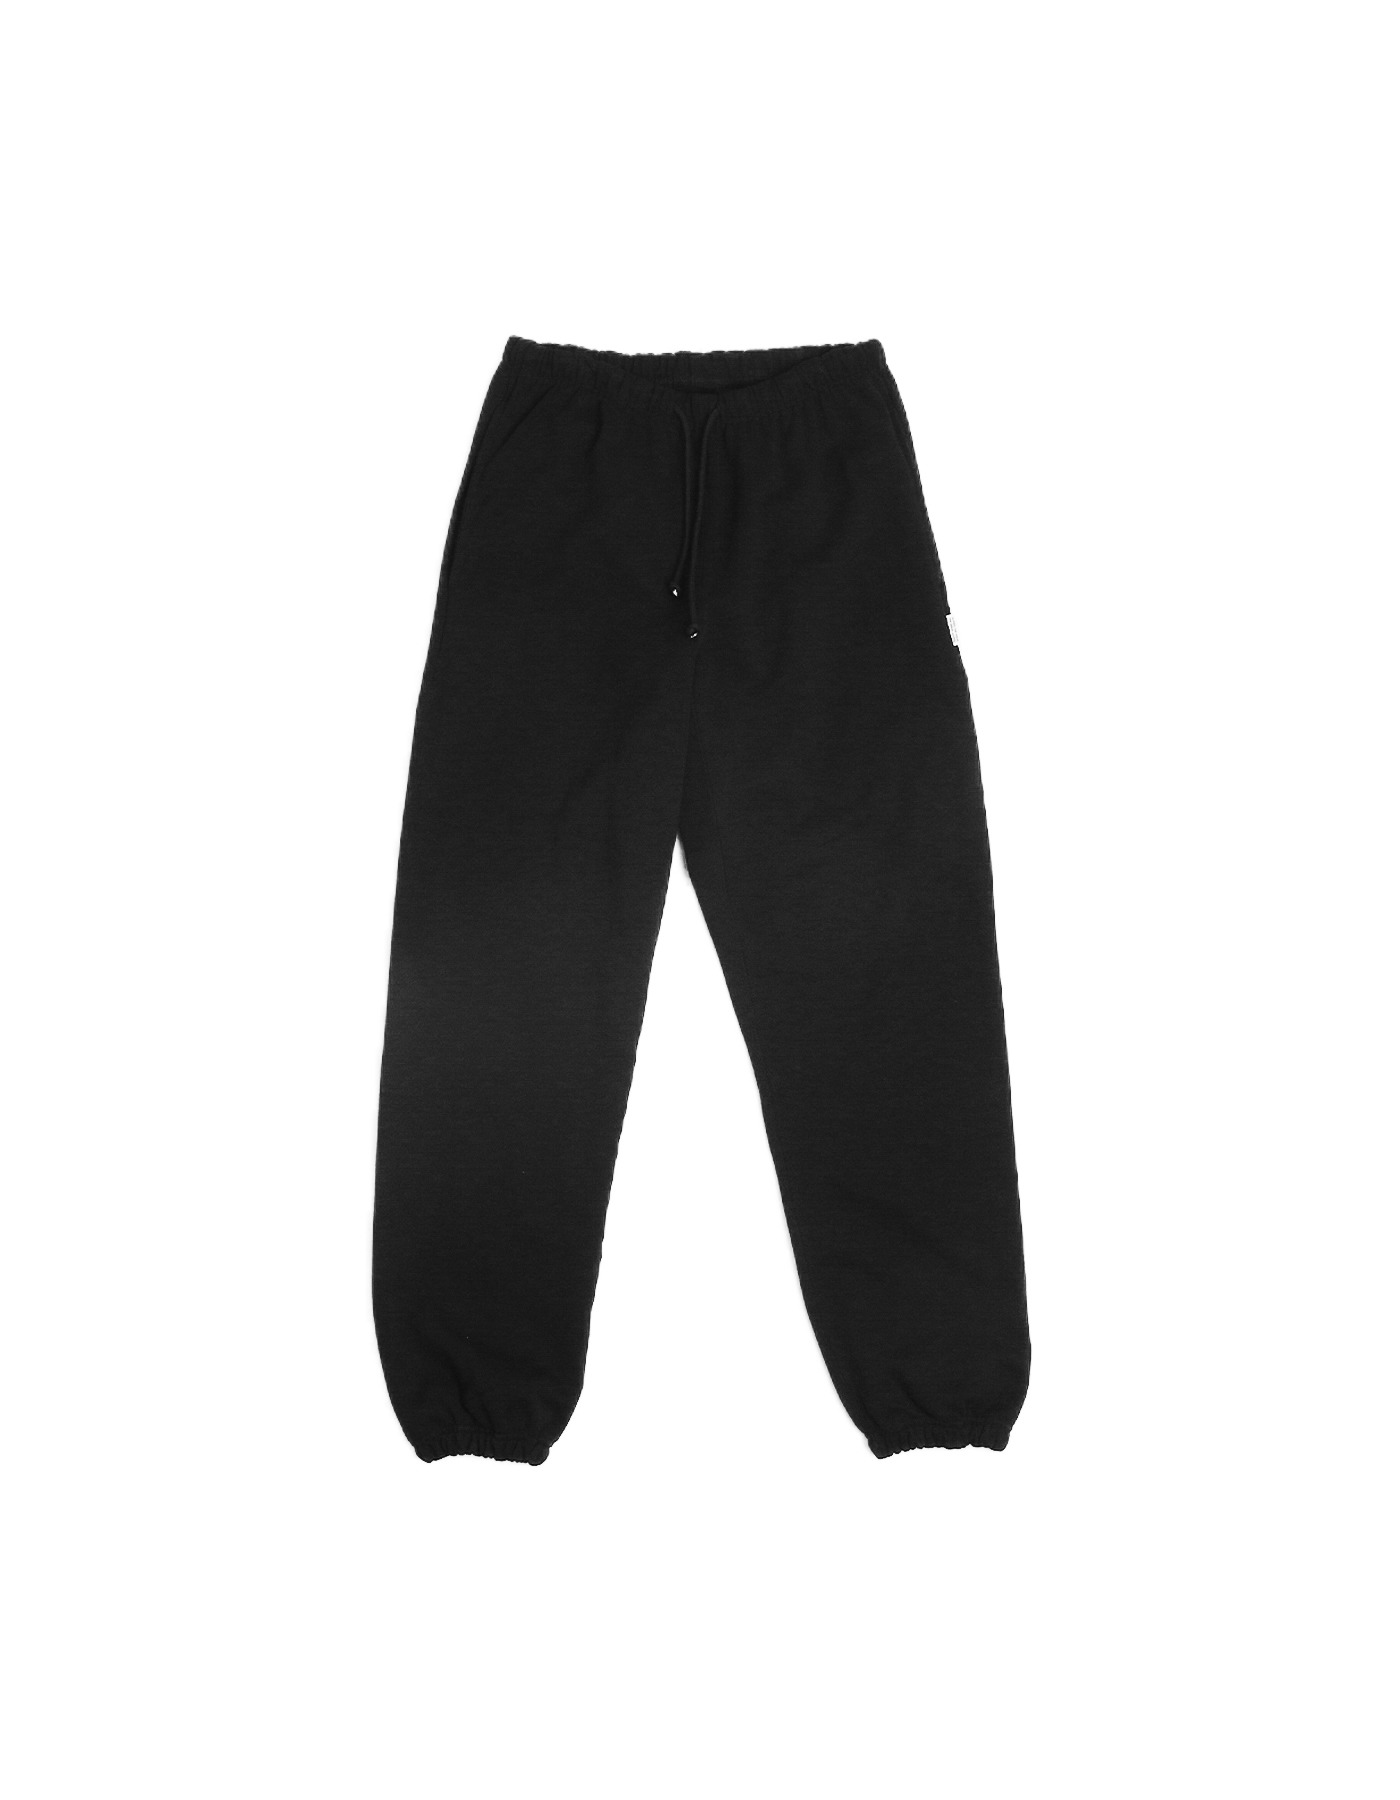 FRED OG SWEATPANTS / BLACK